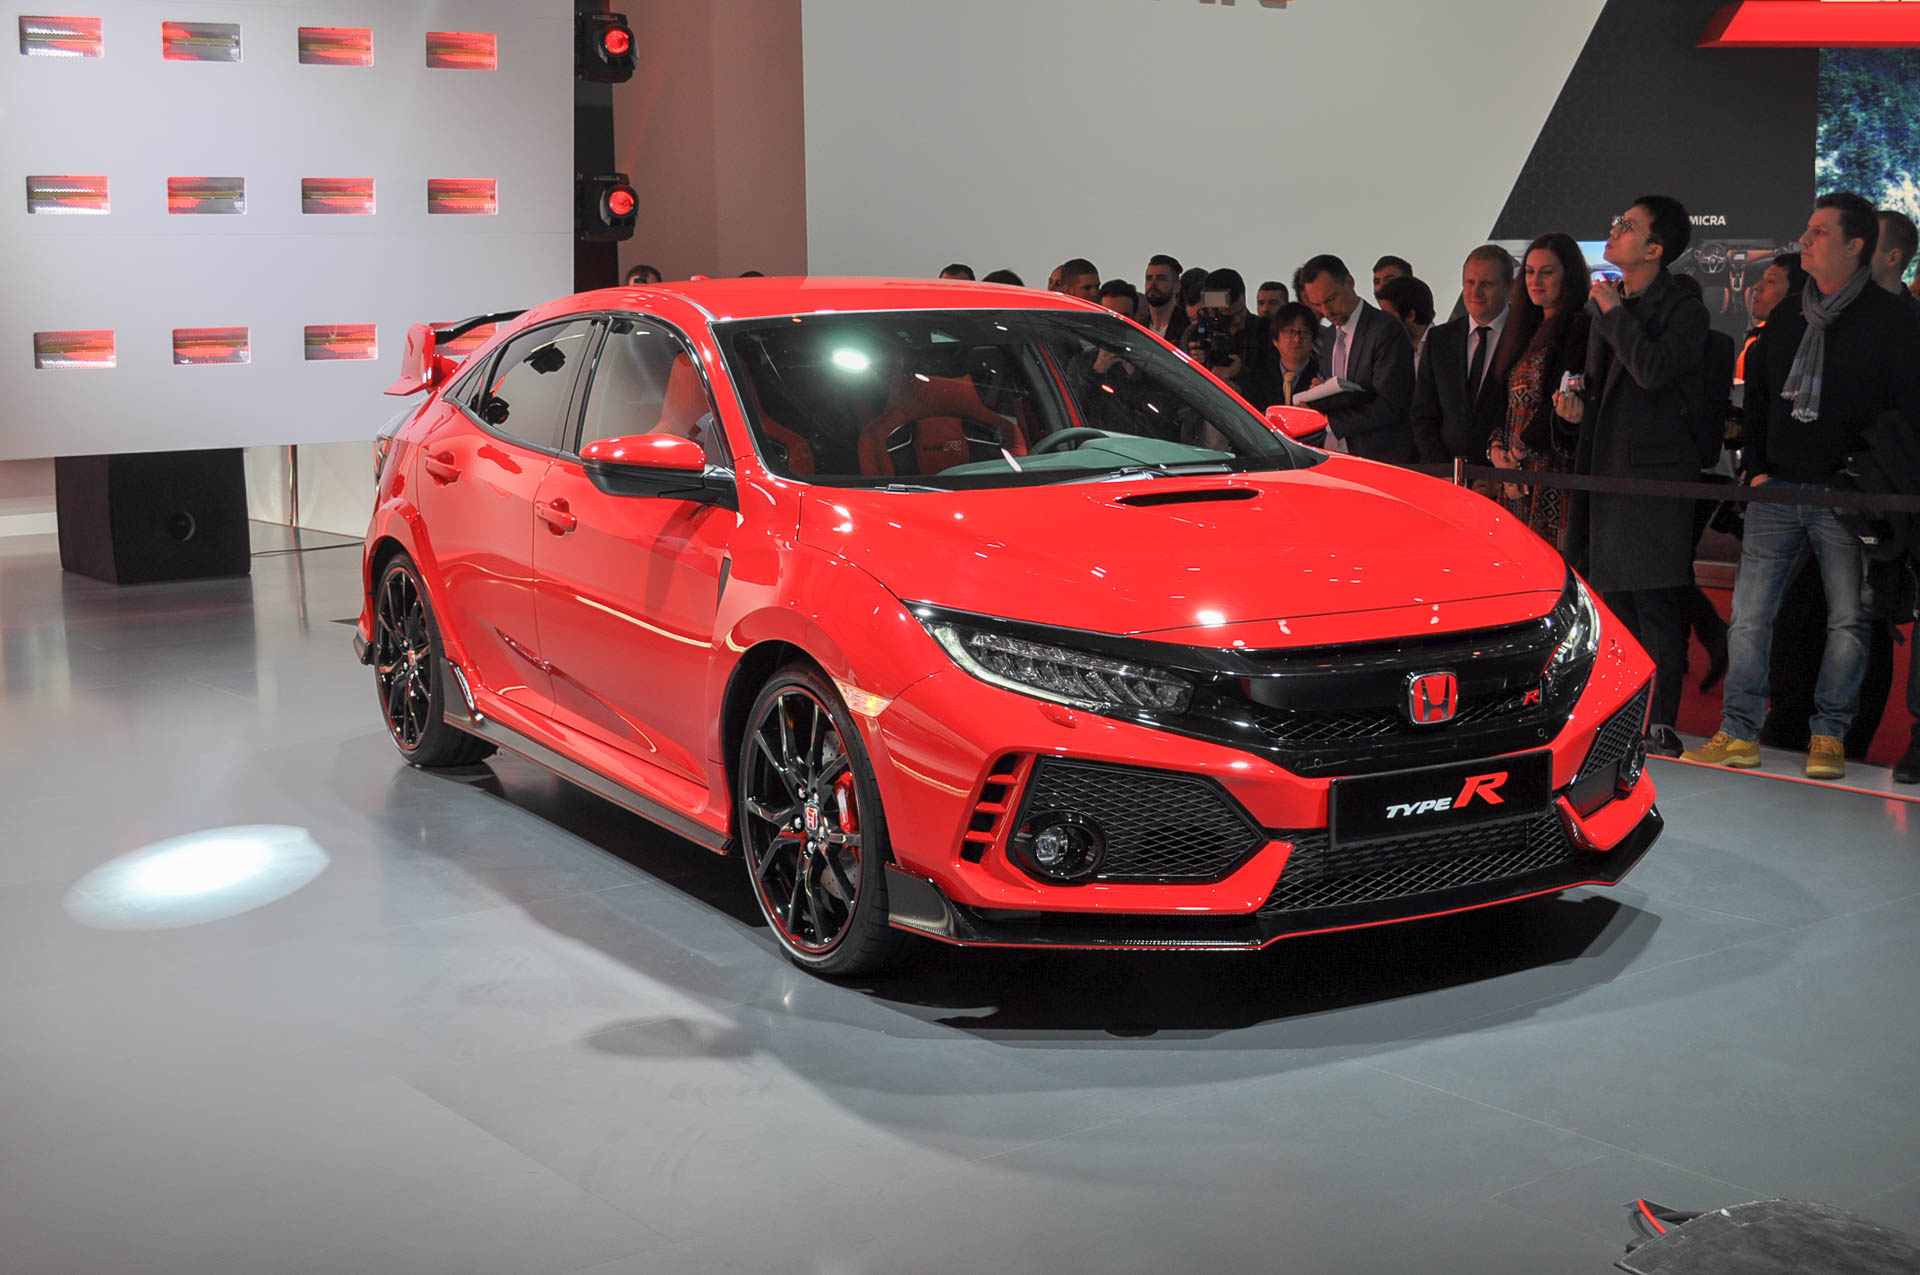 new and used honda civic prices photos reviews specs. Black Bedroom Furniture Sets. Home Design Ideas